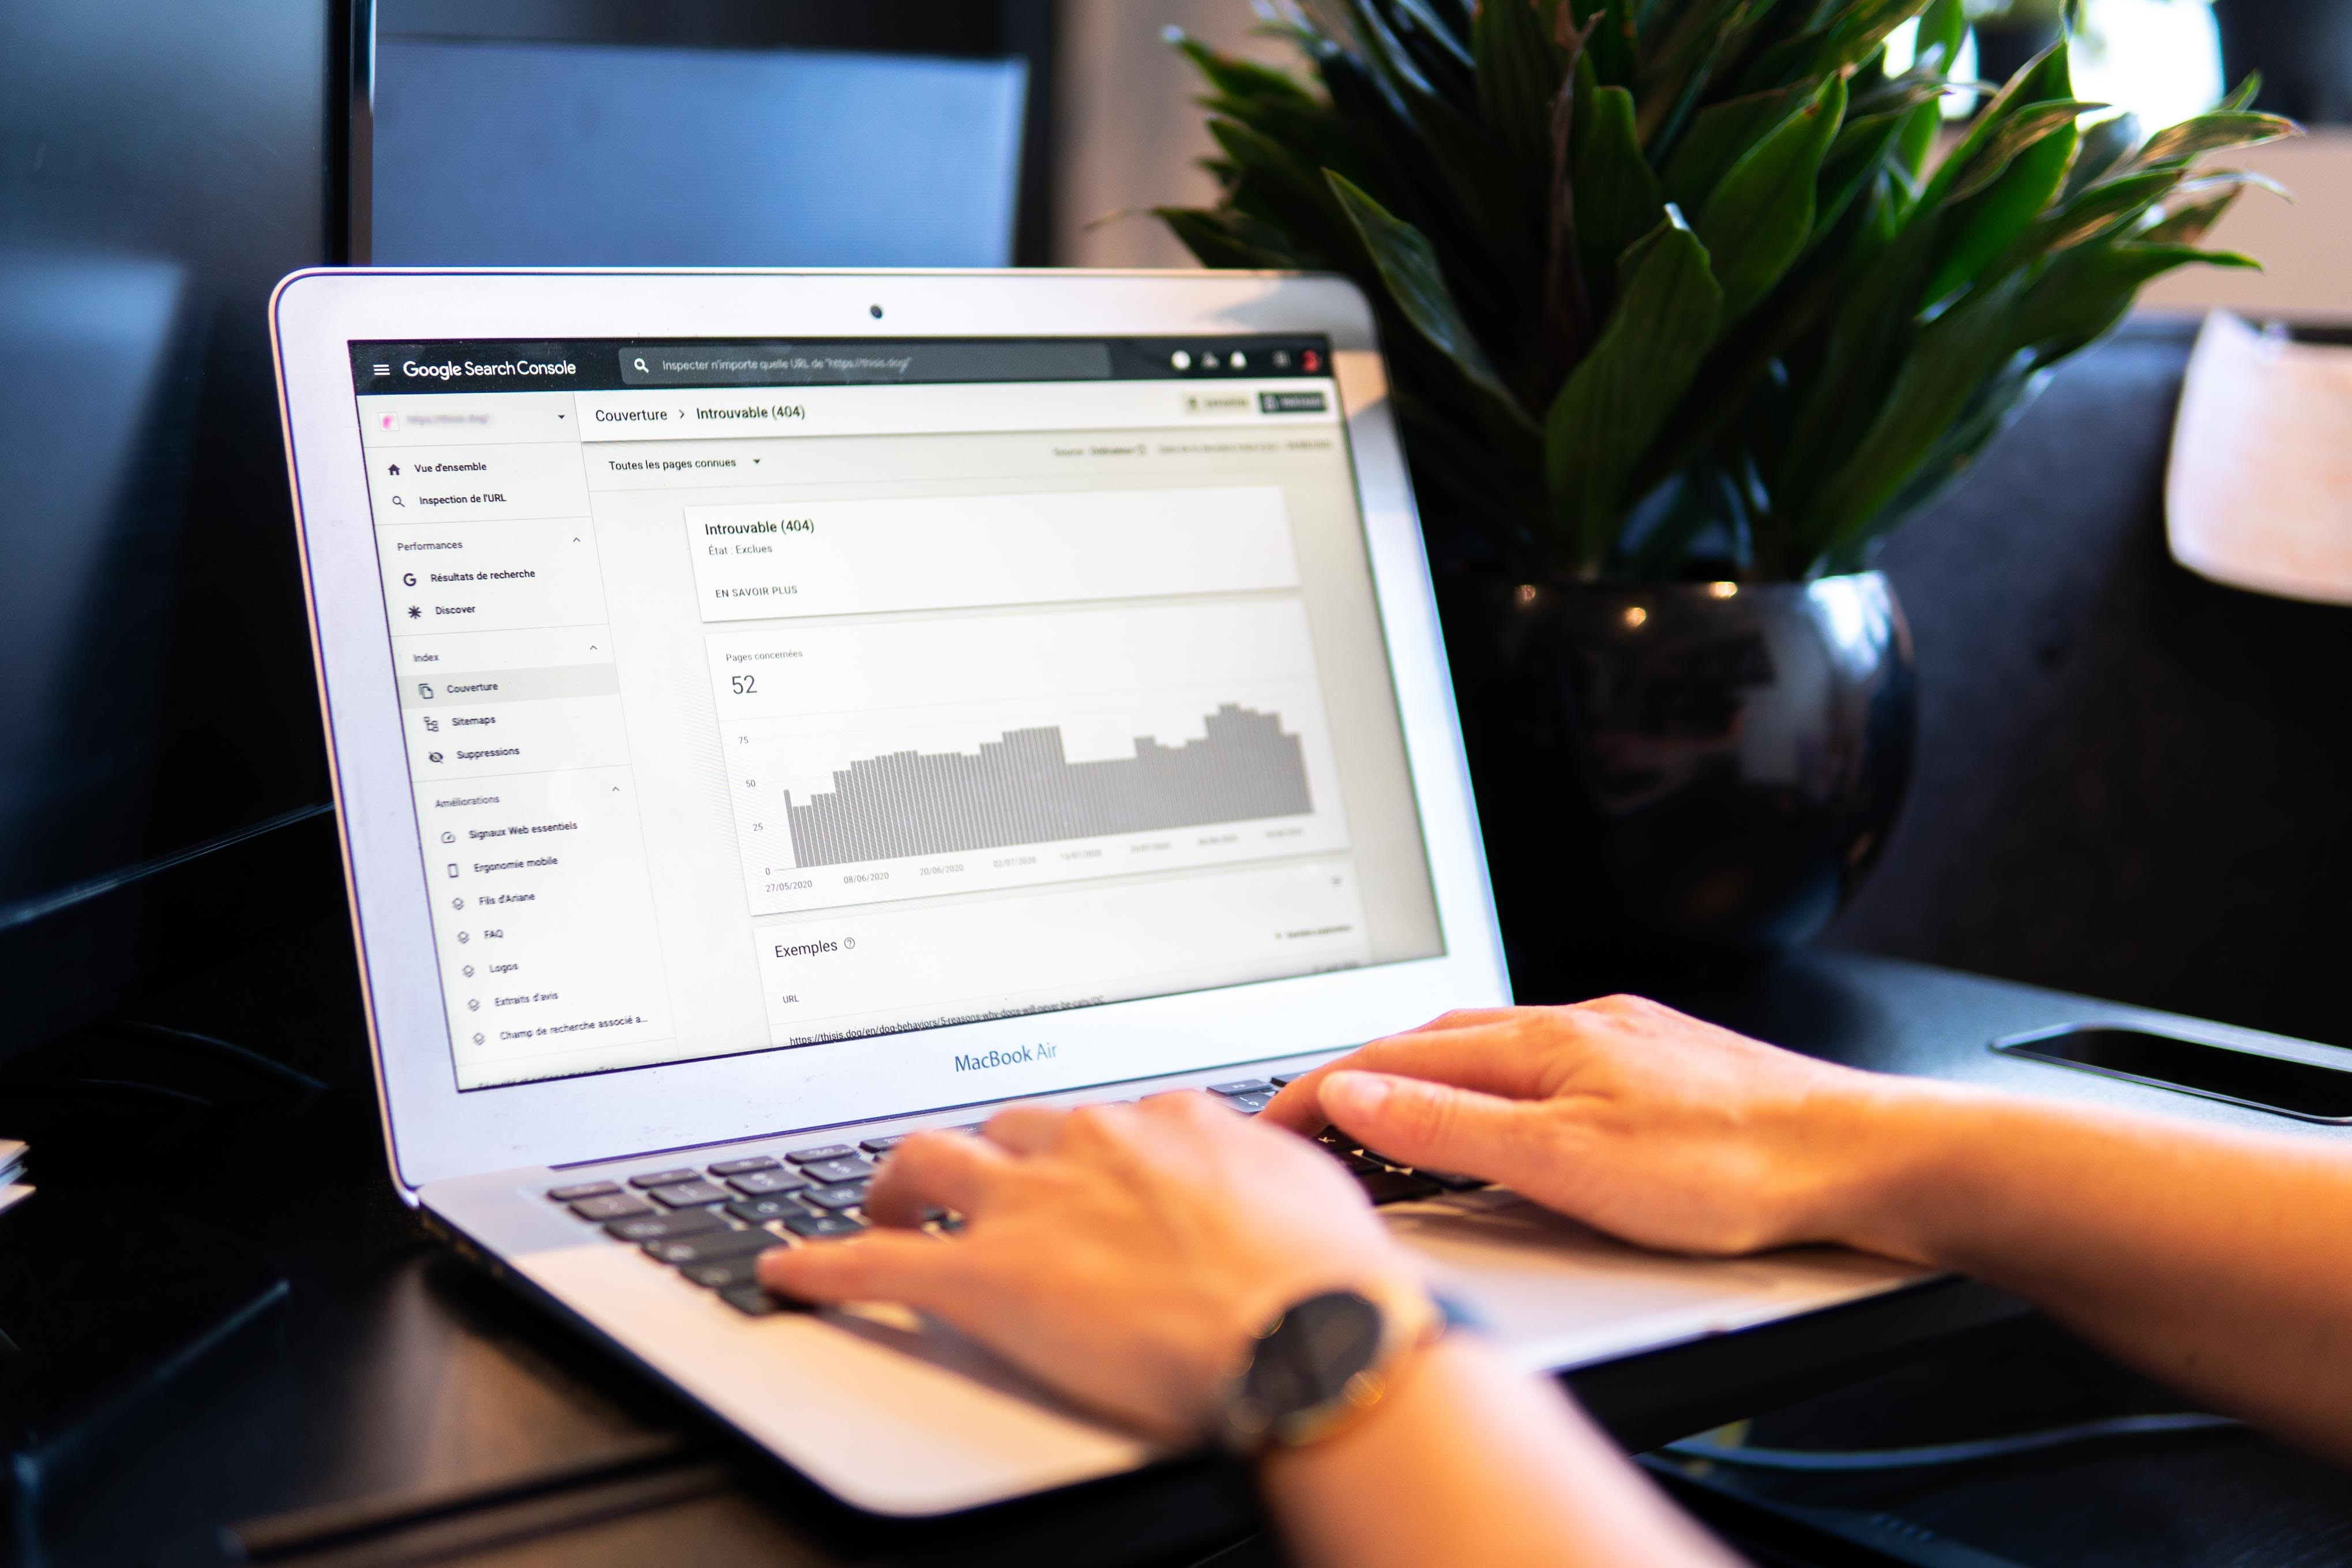 4 things you can do in Google Search Console